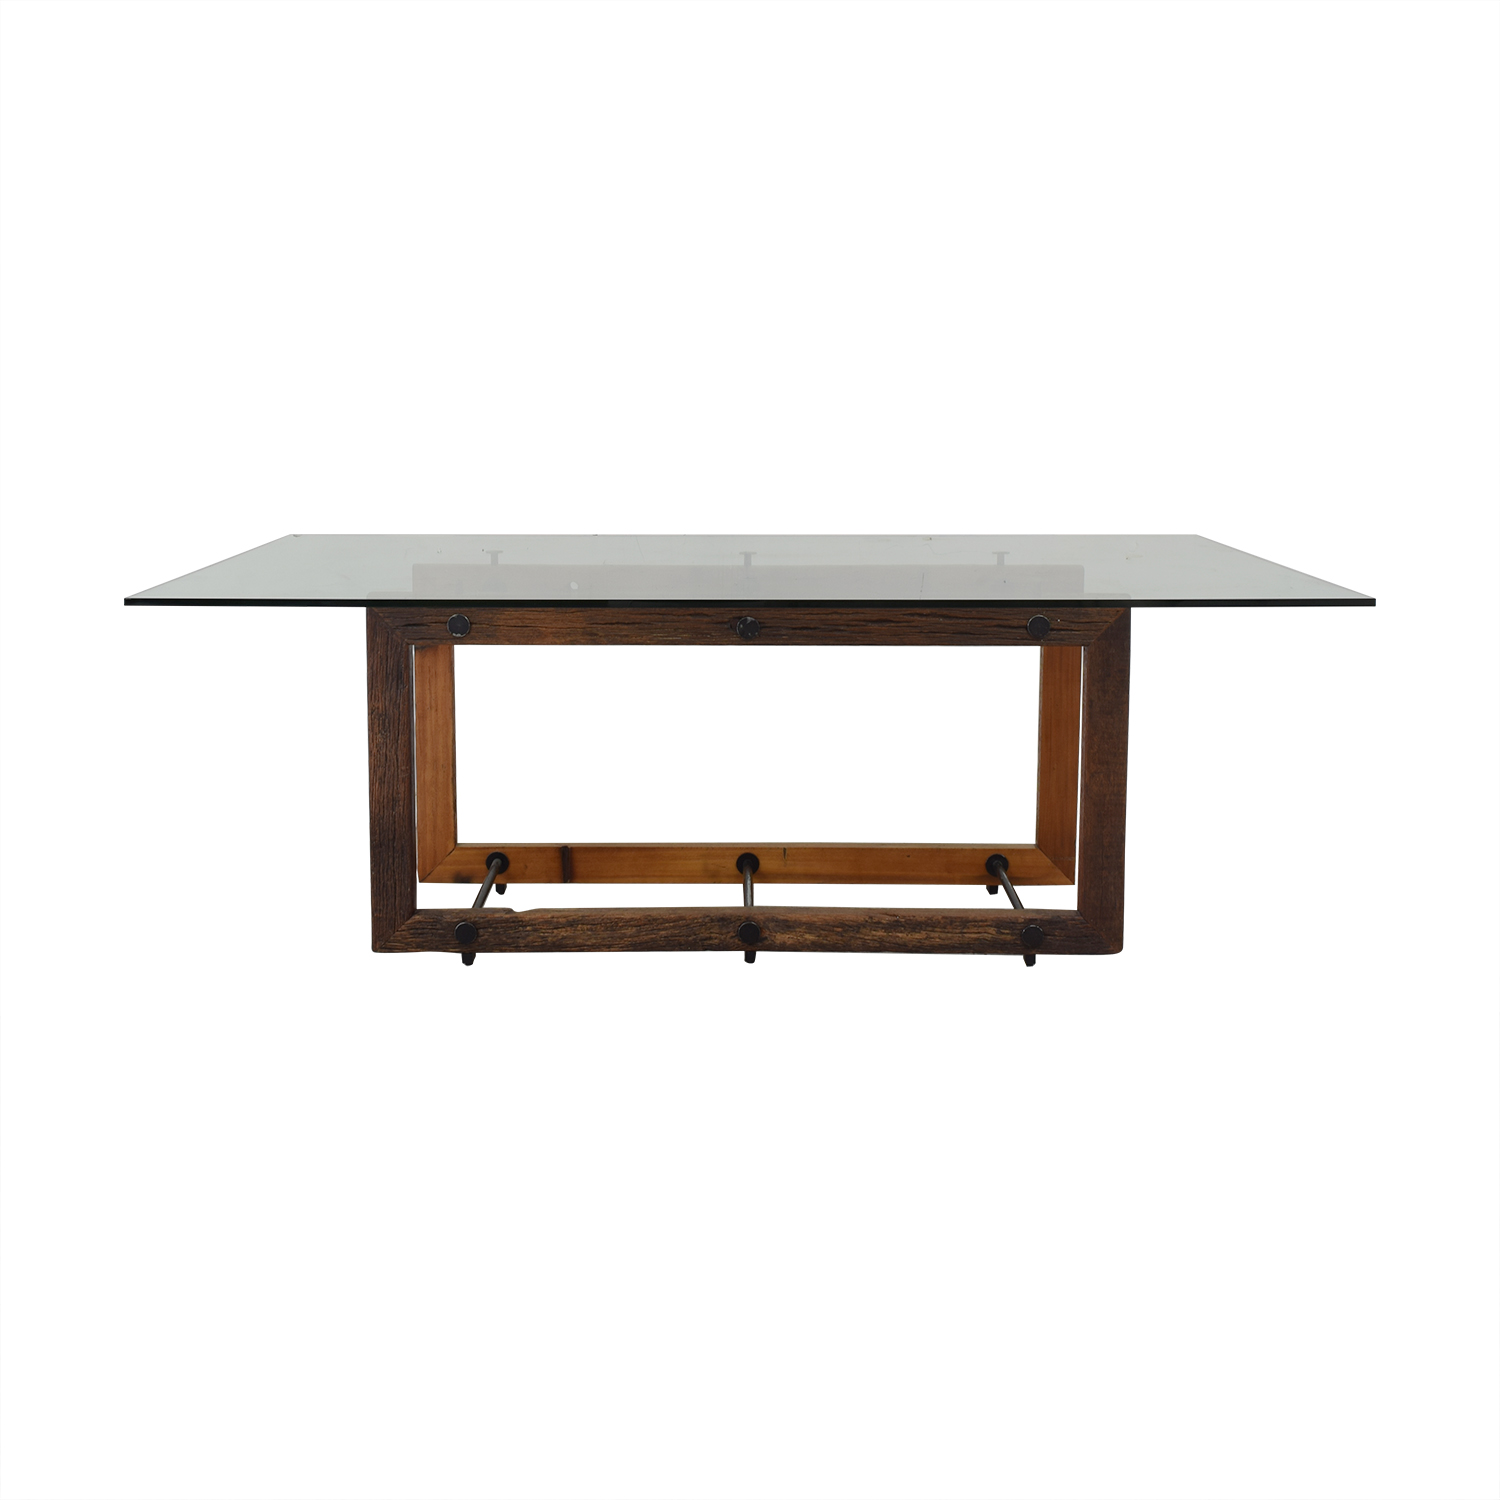 ABC Carpet & Home ABC Carpet & Home Glass Dining Table Tables